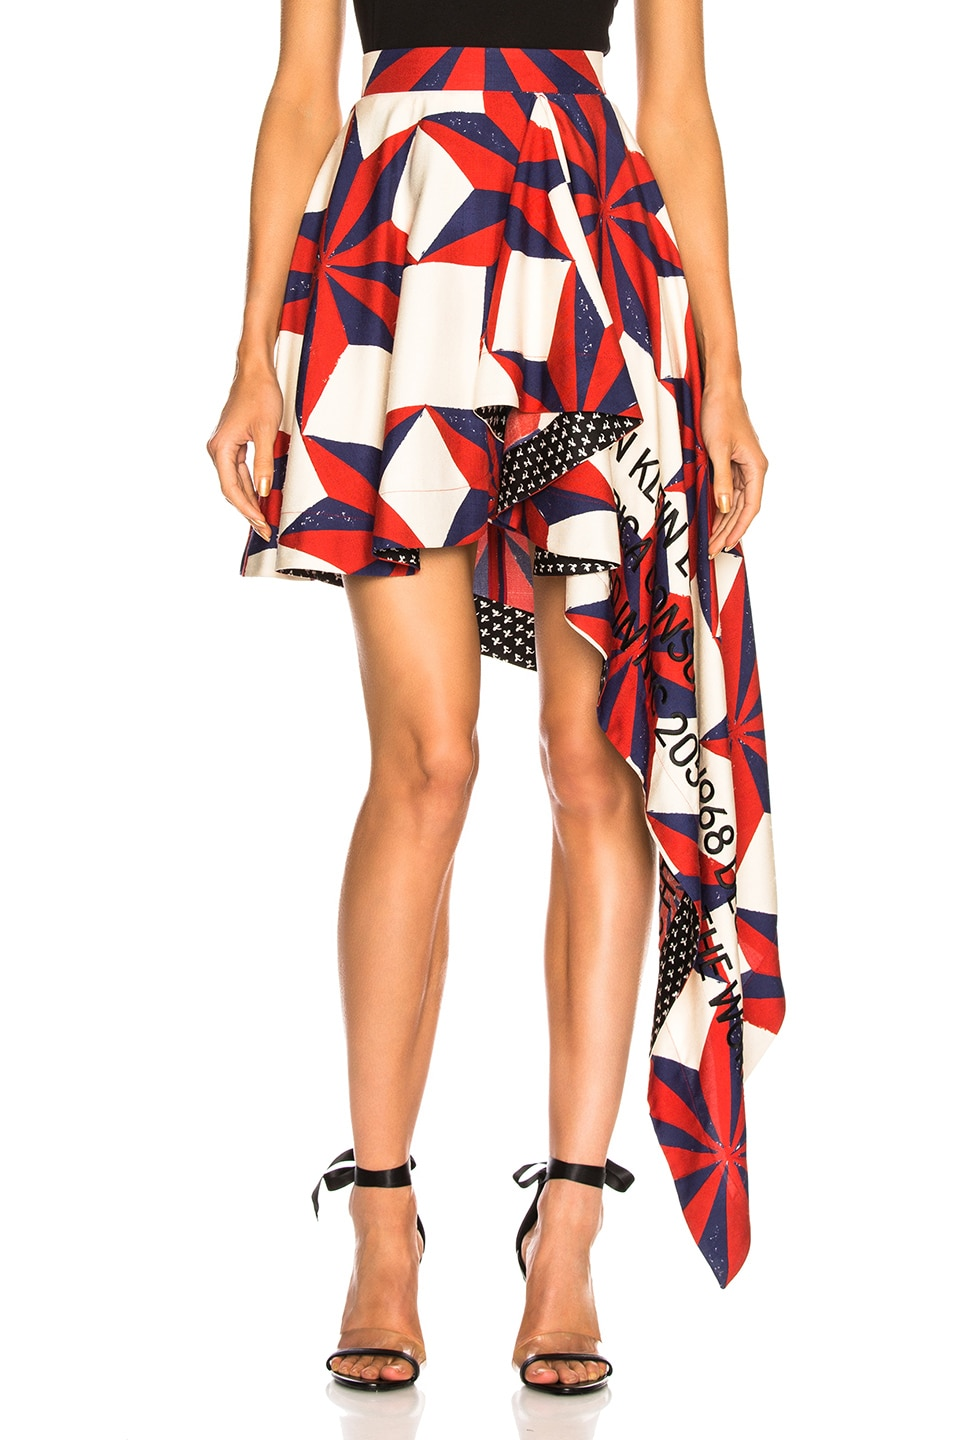 Image 1 of CALVIN KLEIN 205W39NYC Printed Asymmetric Ruffle Skirt in Ecru, Blue, Red & Black